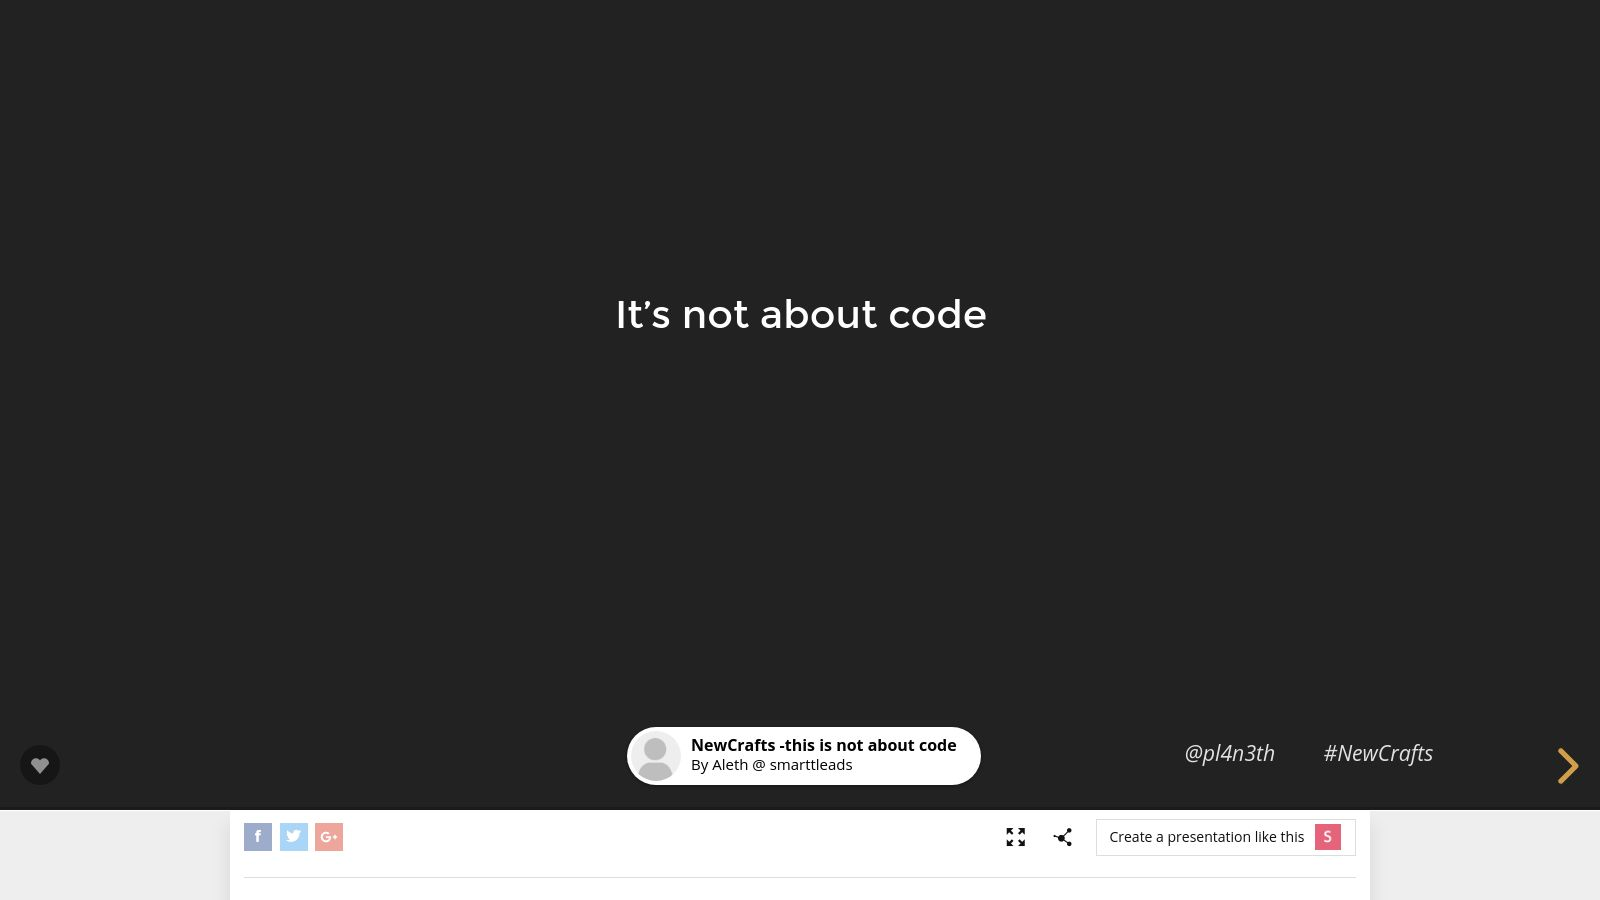 This is not about code